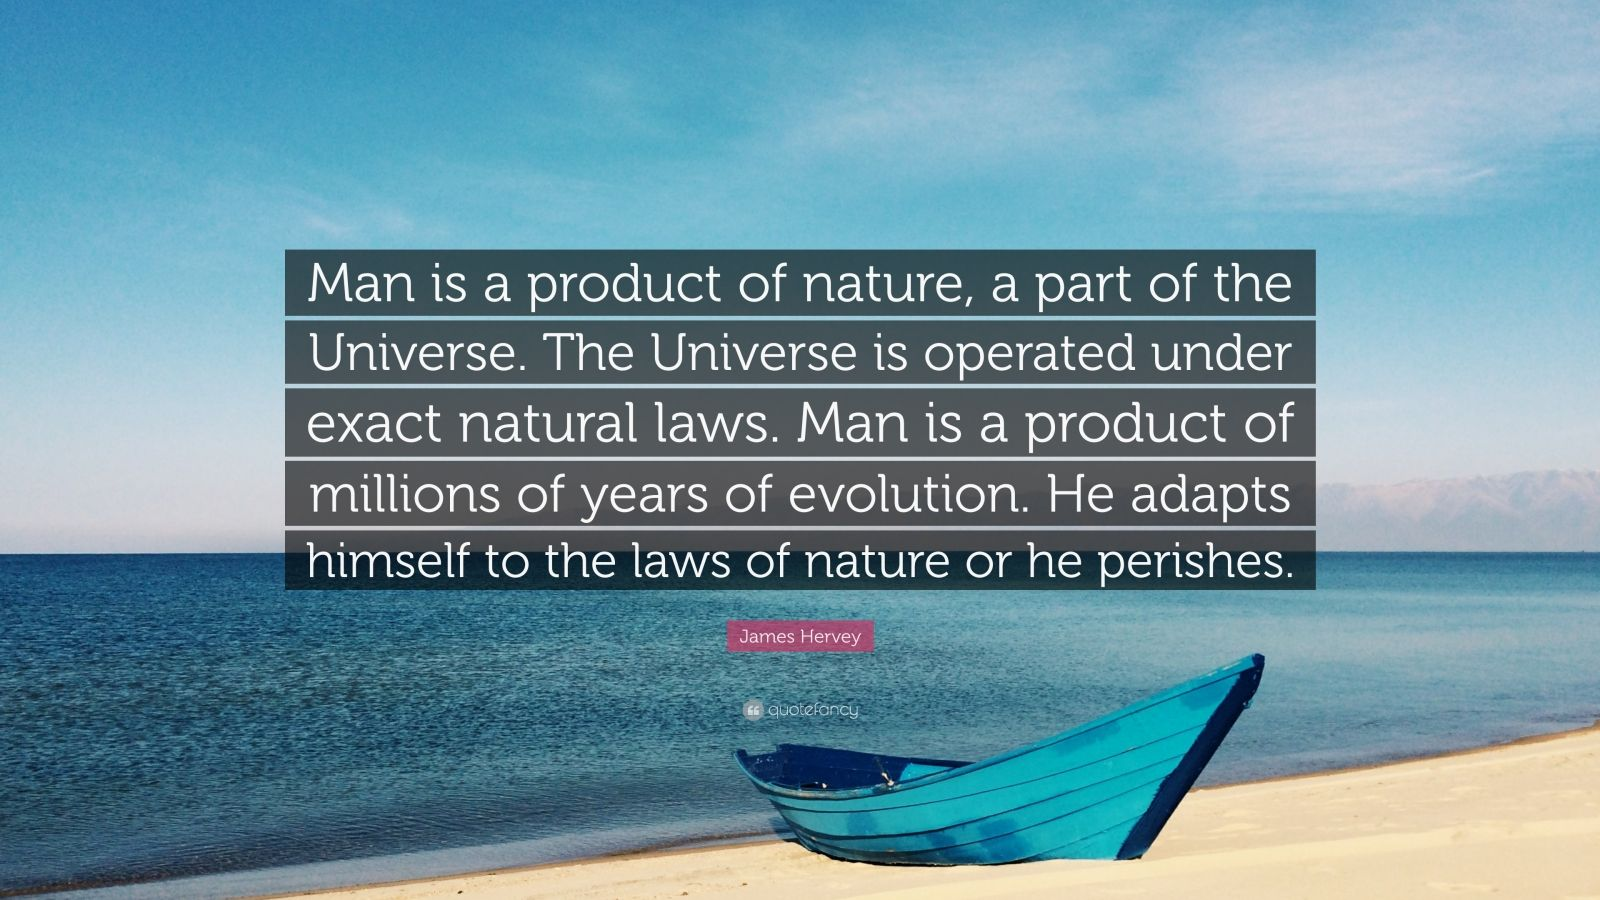 are we a product of nature